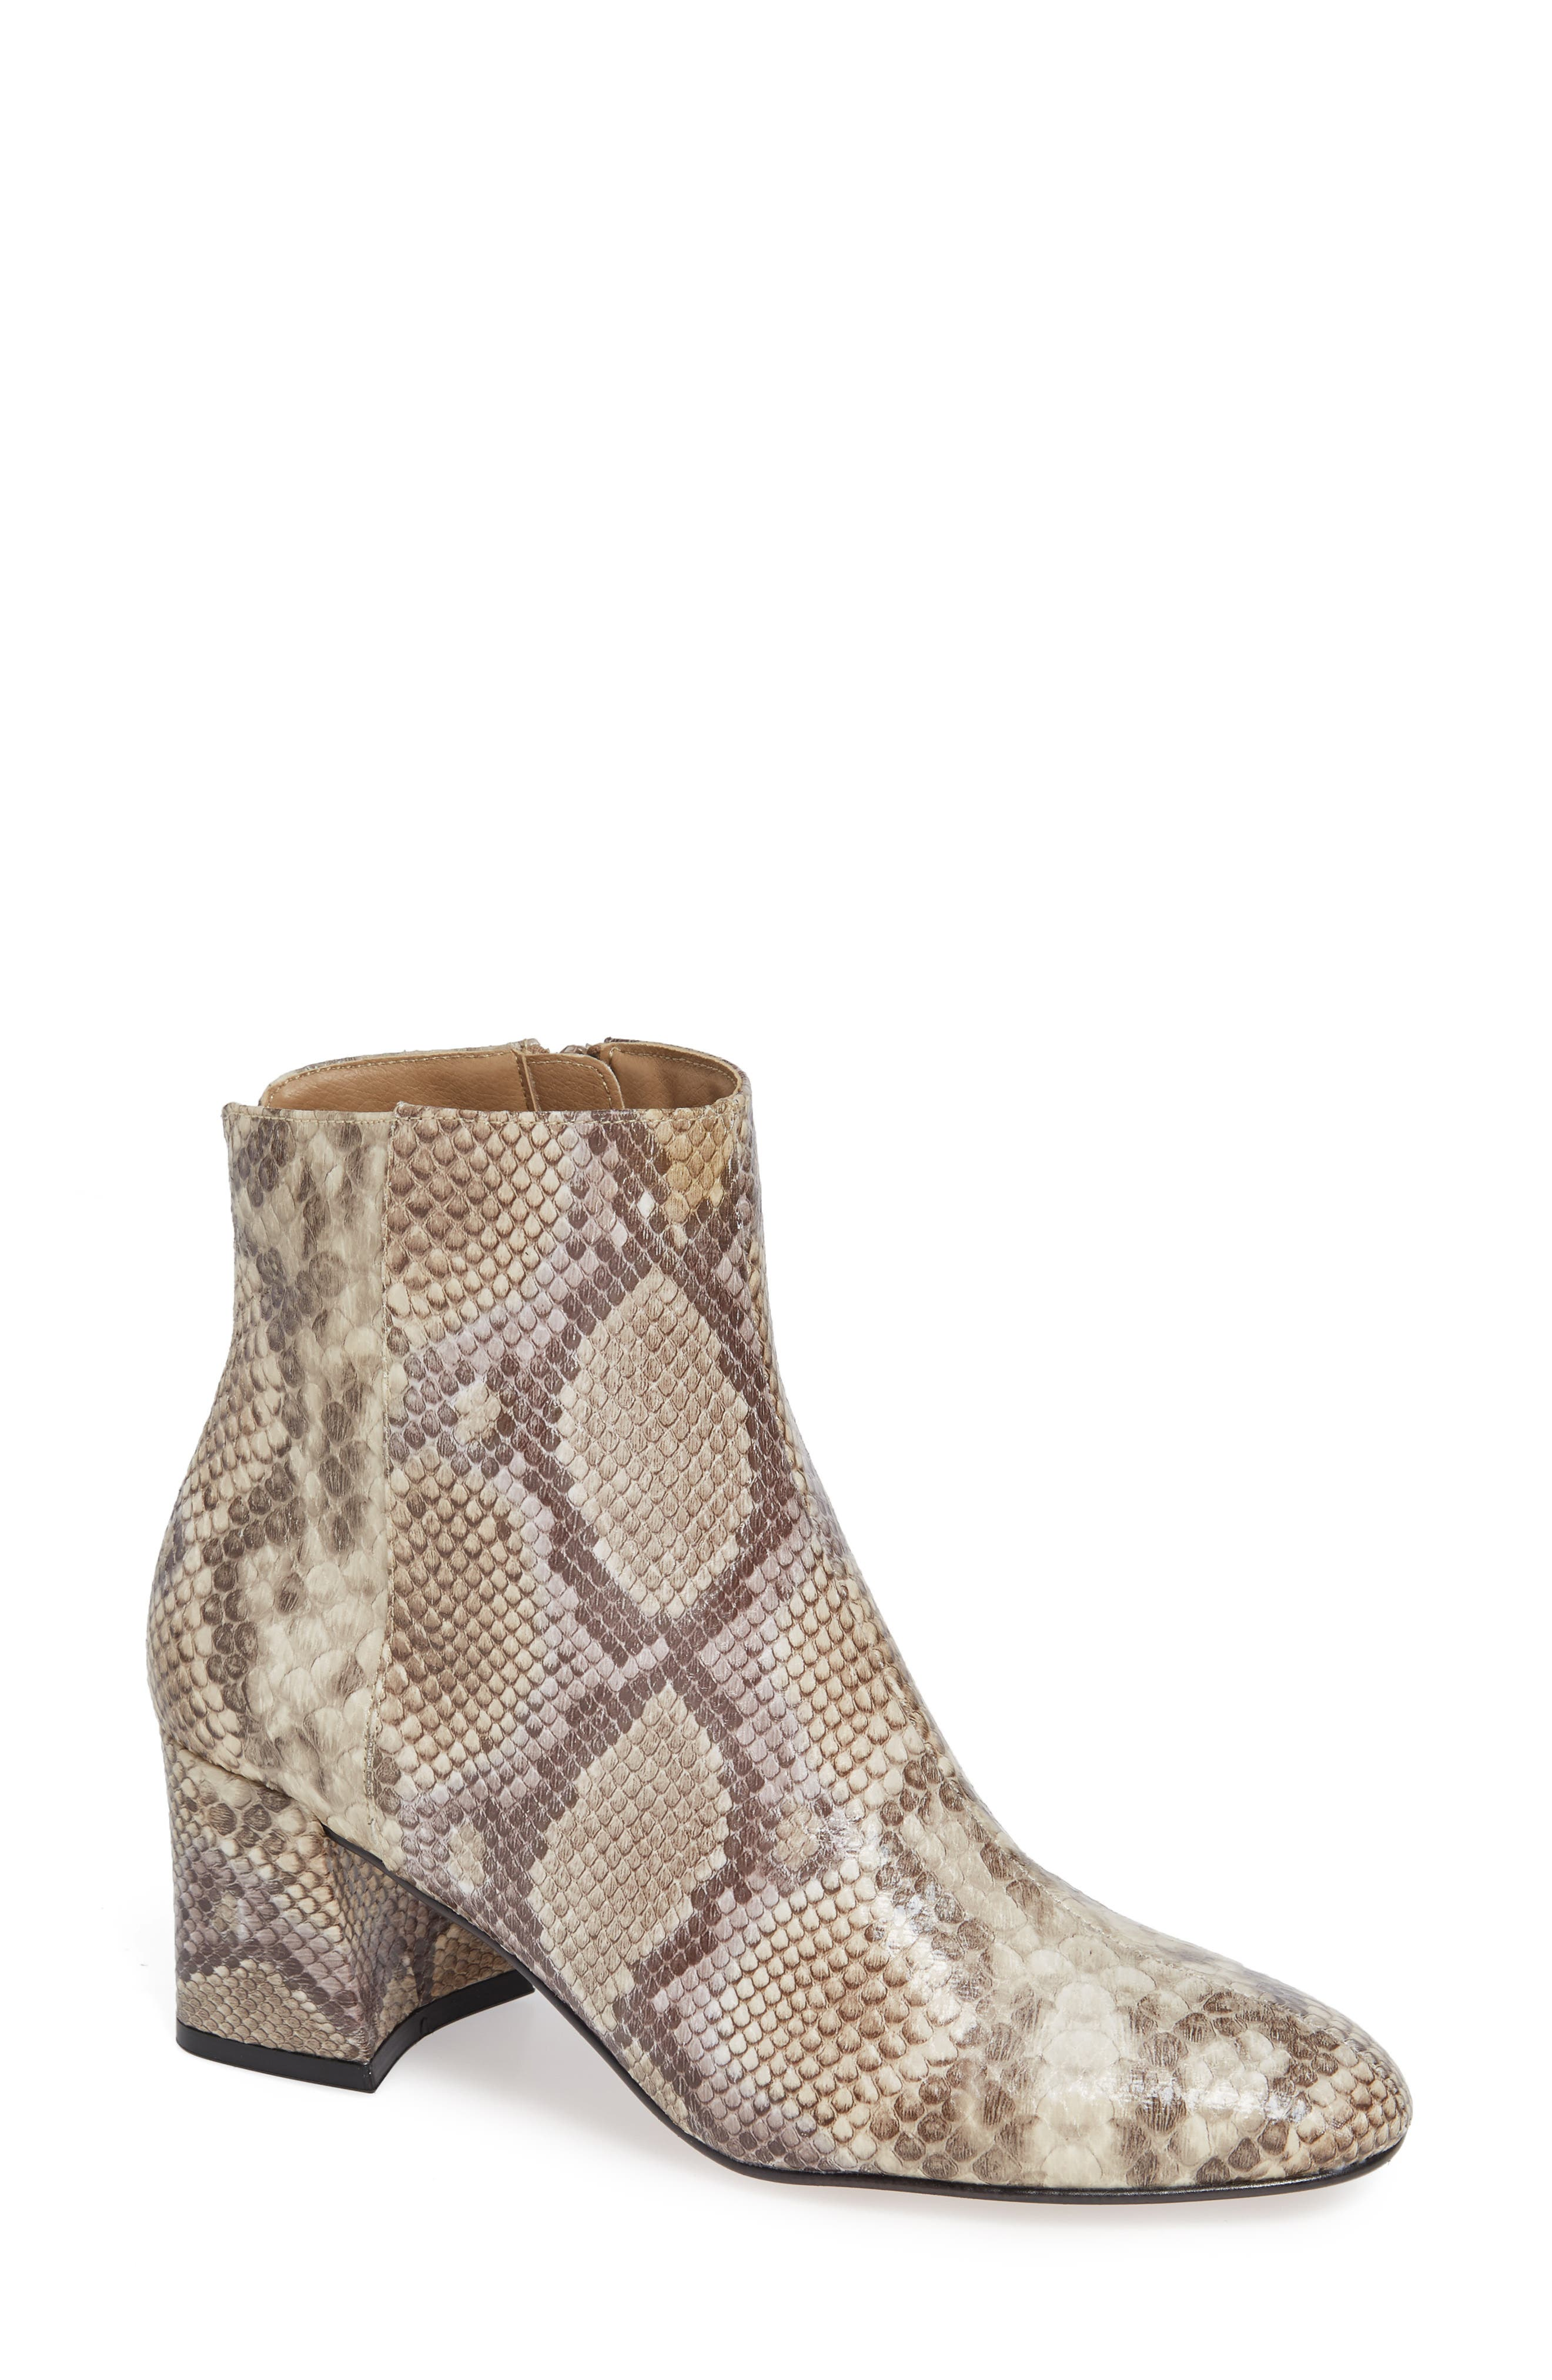 Chinese Laundry Daria Bootie, Beige